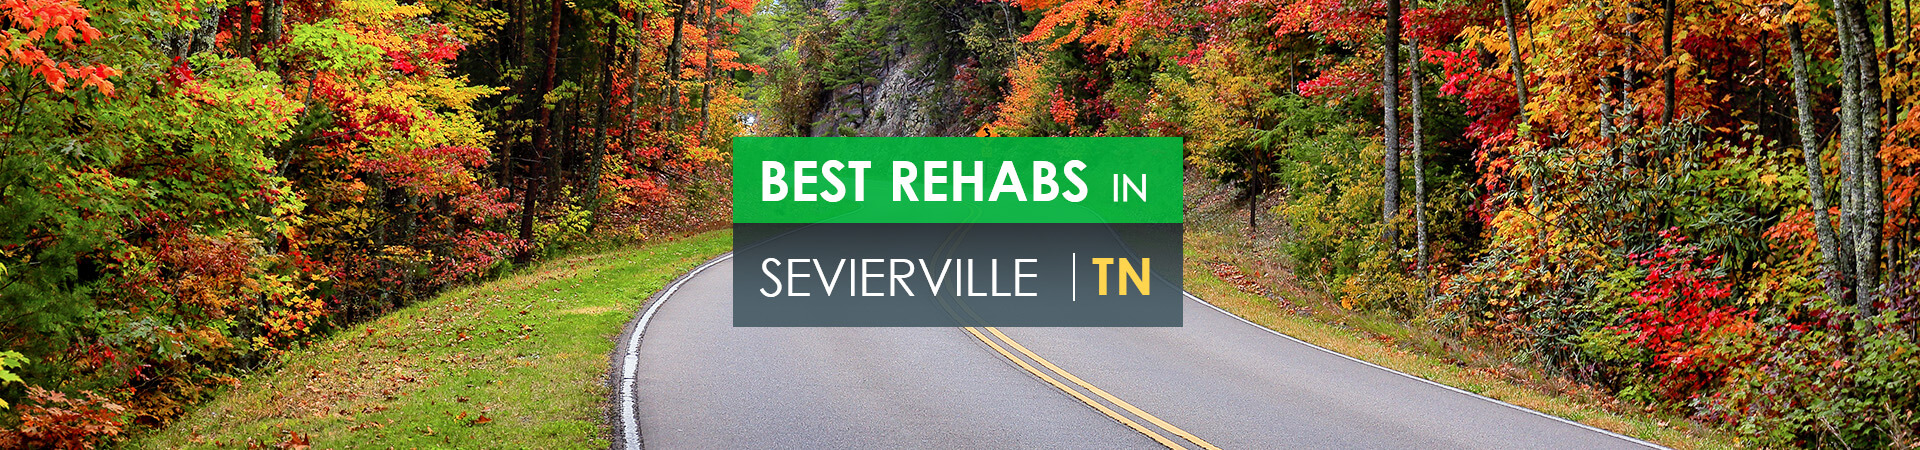 Best rehabs in Sevierville, TN